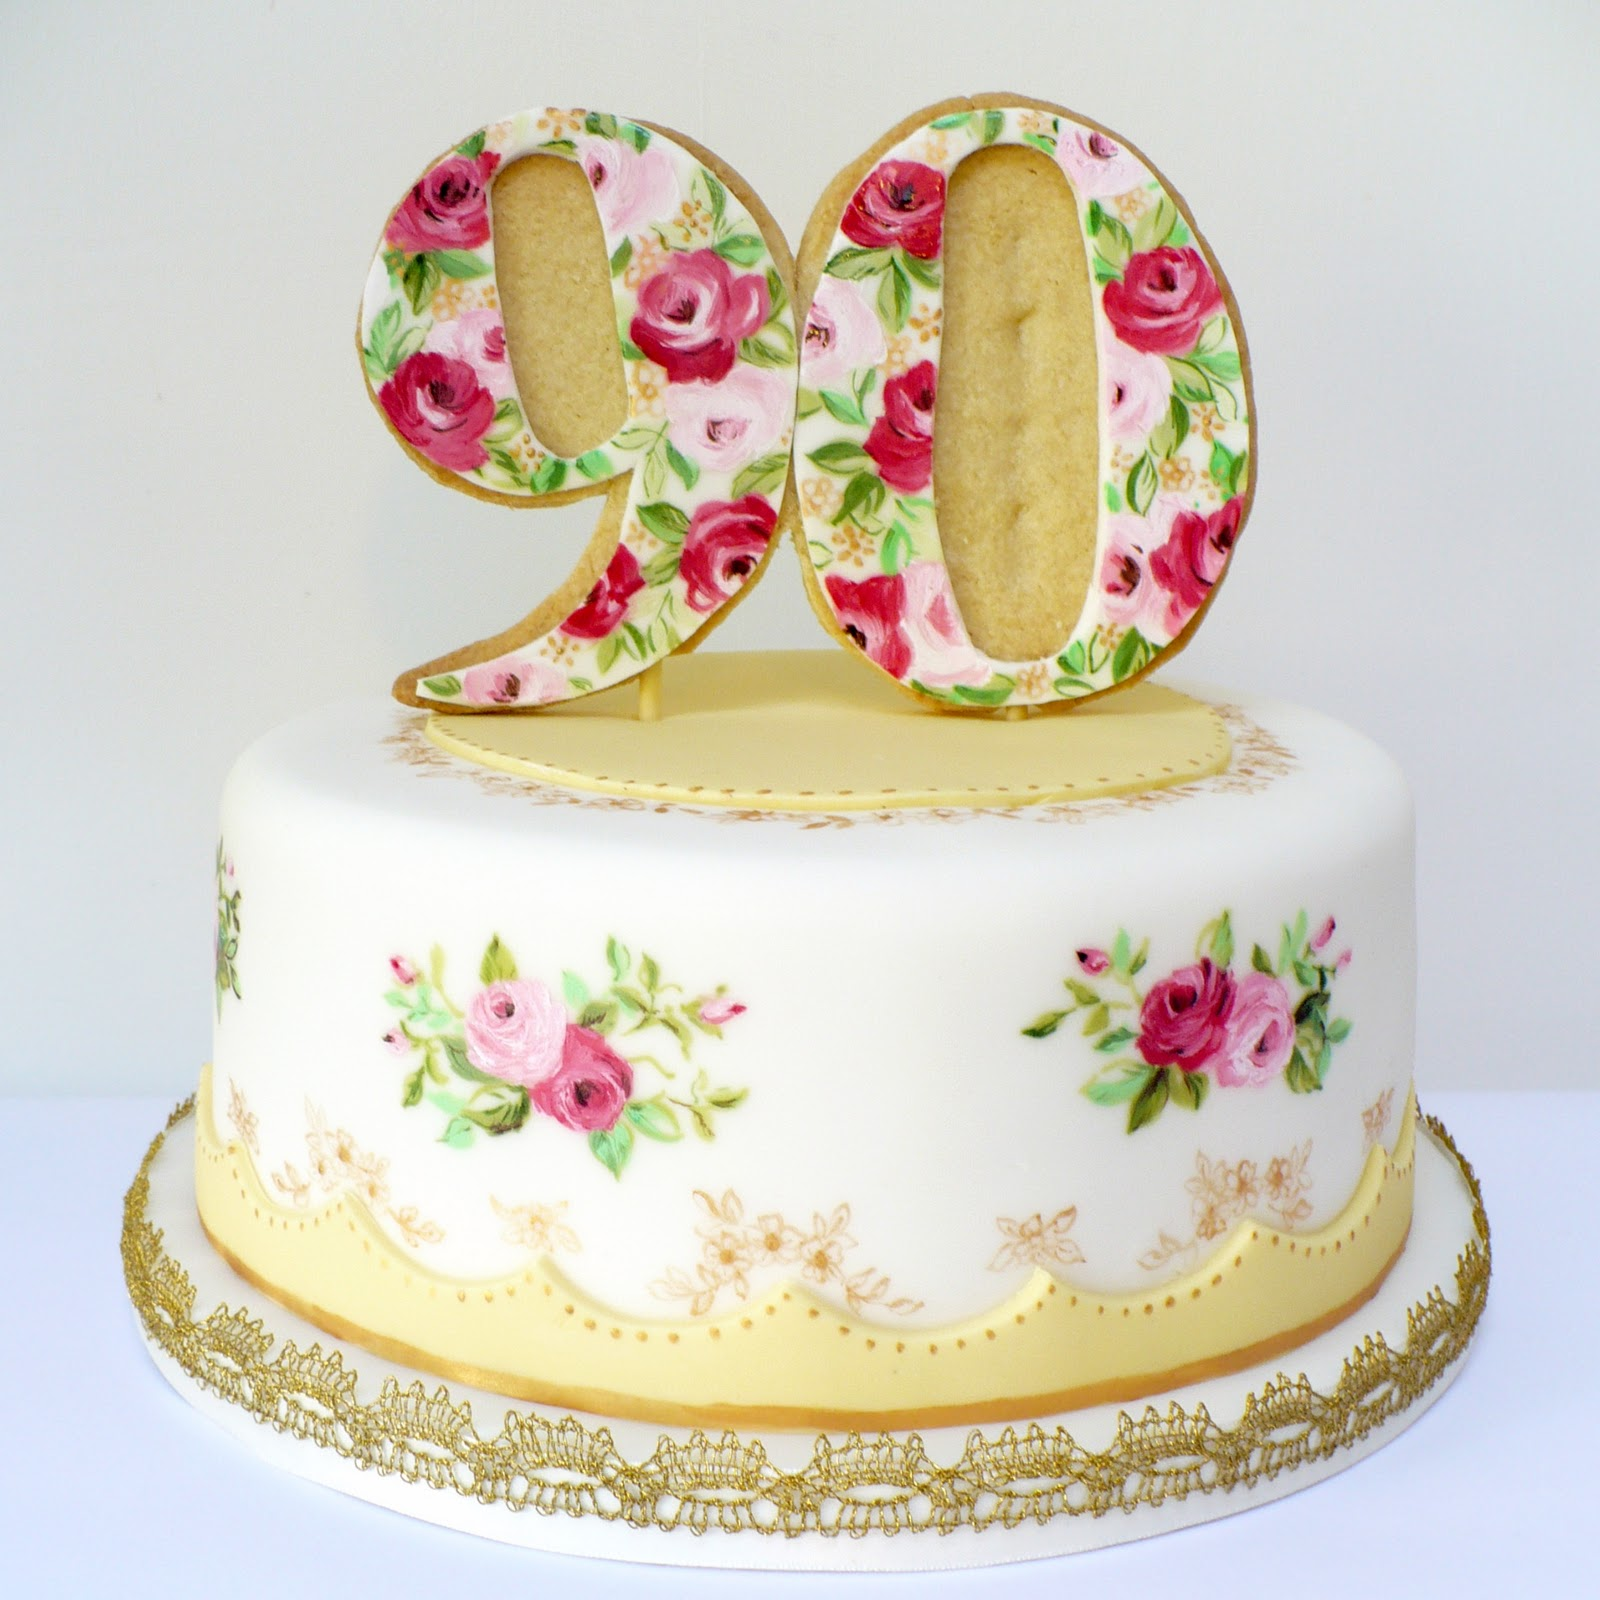 Birthday Cakes For 80 Year Old Woman Joanne Years Loved Gold Glitter Heart Cake Topper Amelies House HAPPY BLOG BIRTHDAY